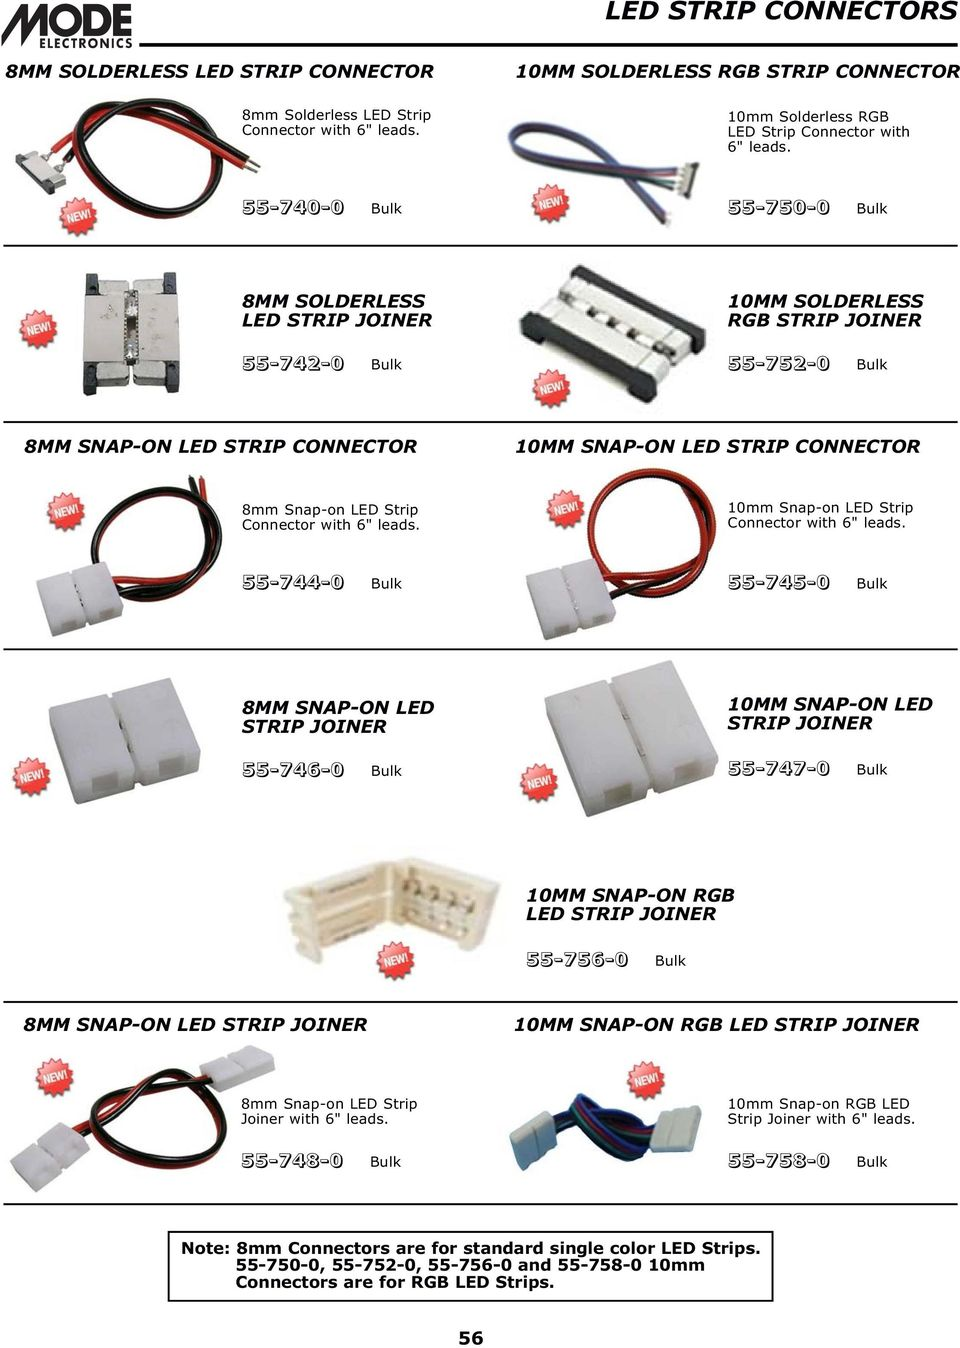 Indicator Lamps Led Replacement Pdf 120v Strips Rgb Wiring Diagram Strip Connector With 6 Leads 10mm Snap On